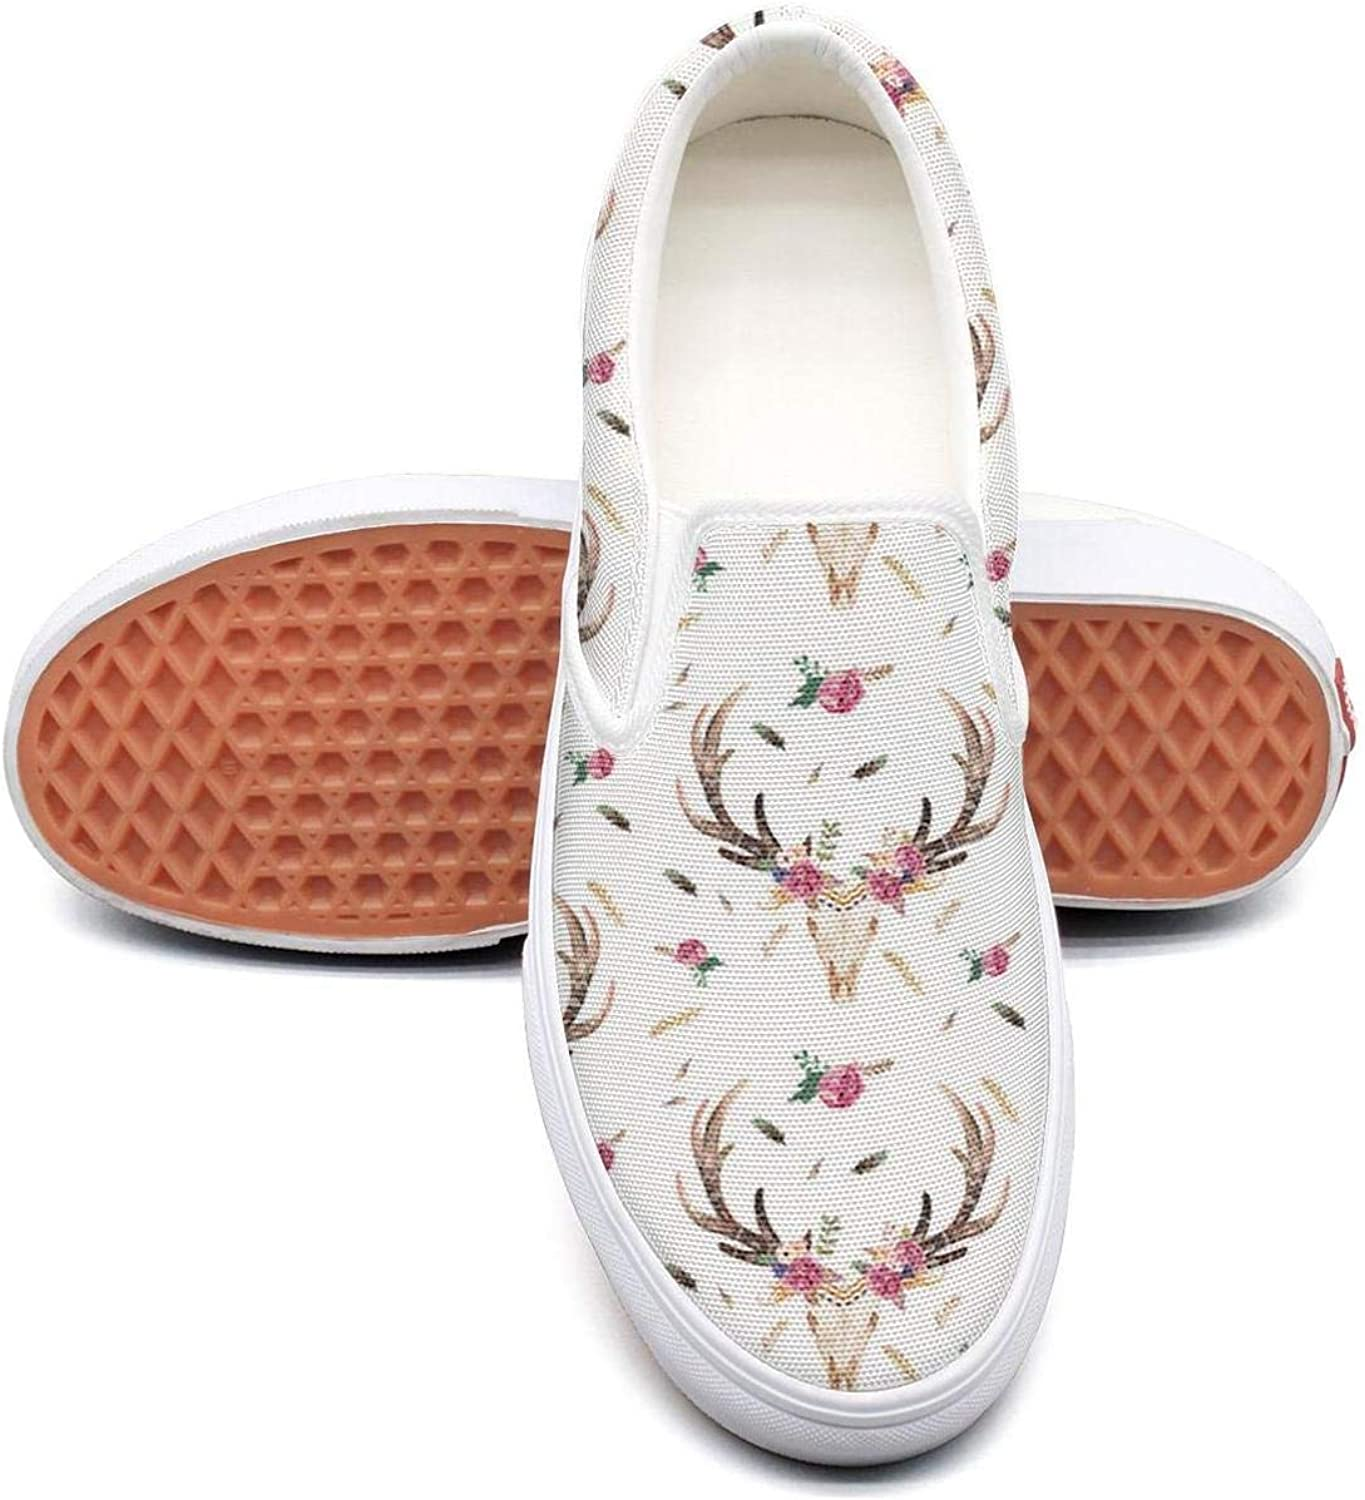 Aztec Beauty Floral Skull Deer Slip On Canvas Upper Sneakers Canvas shoes for Women Fashion